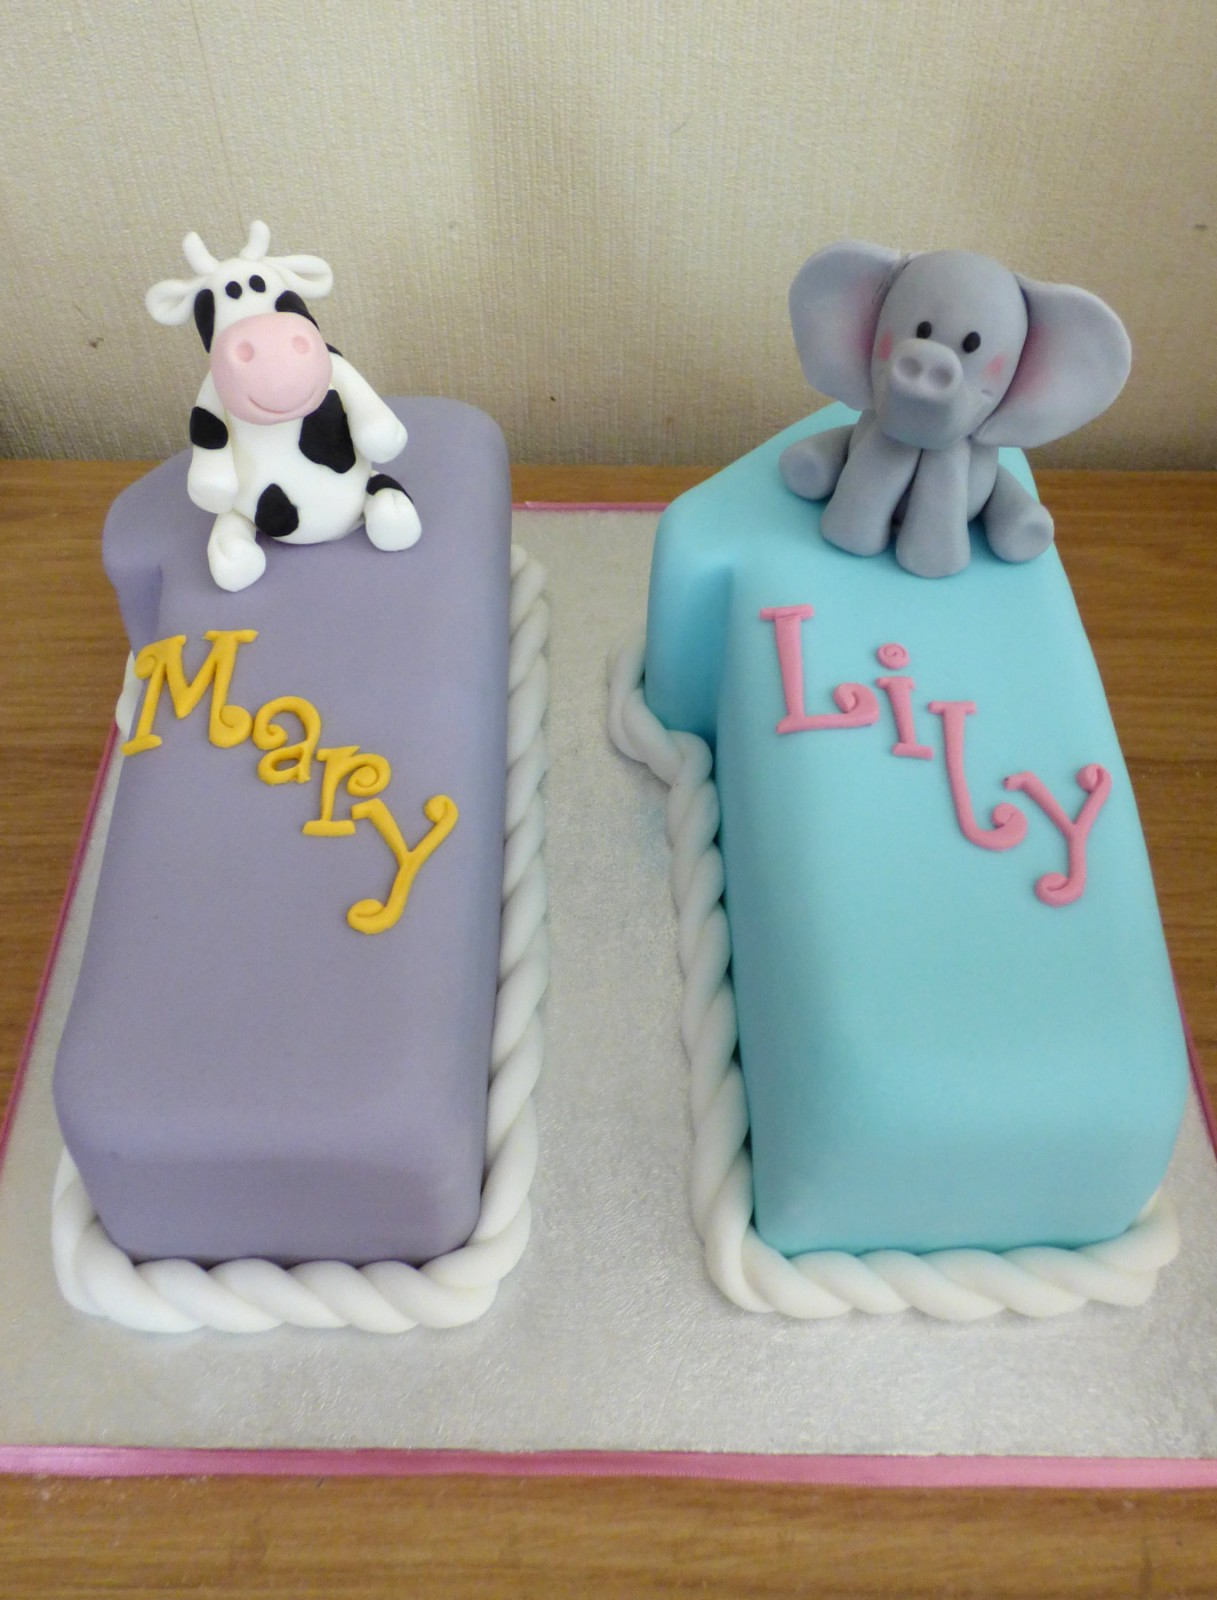 Twins 11th Birthday Cake Cow and Elephant Themed with ...